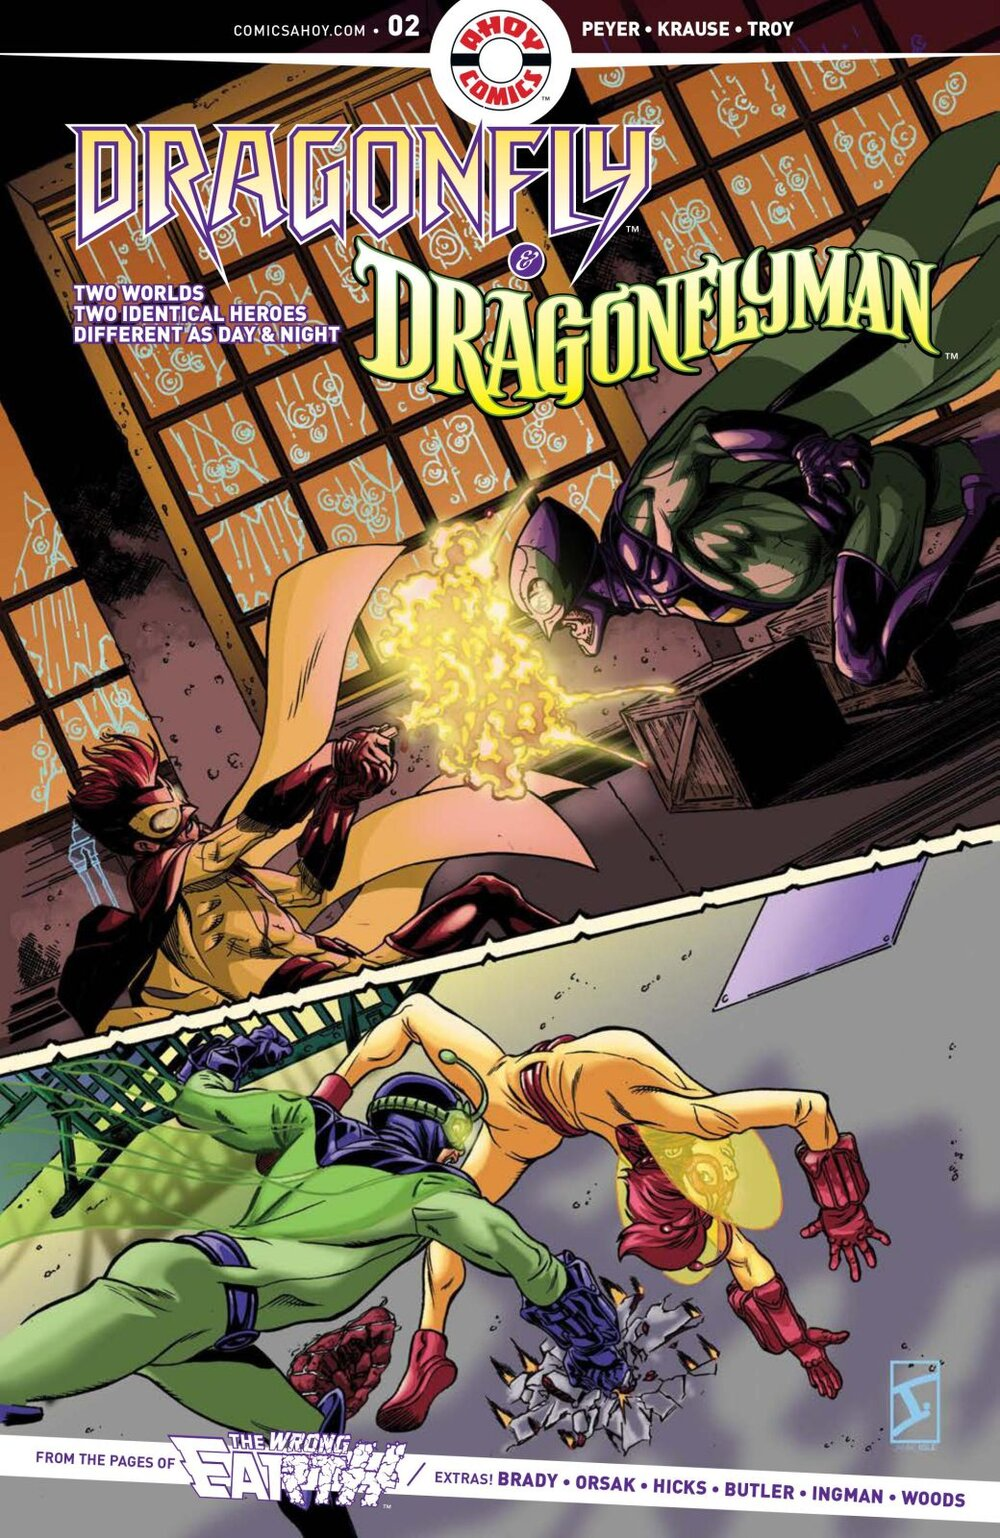 DRAGONFLYMAN2Cover.jpg